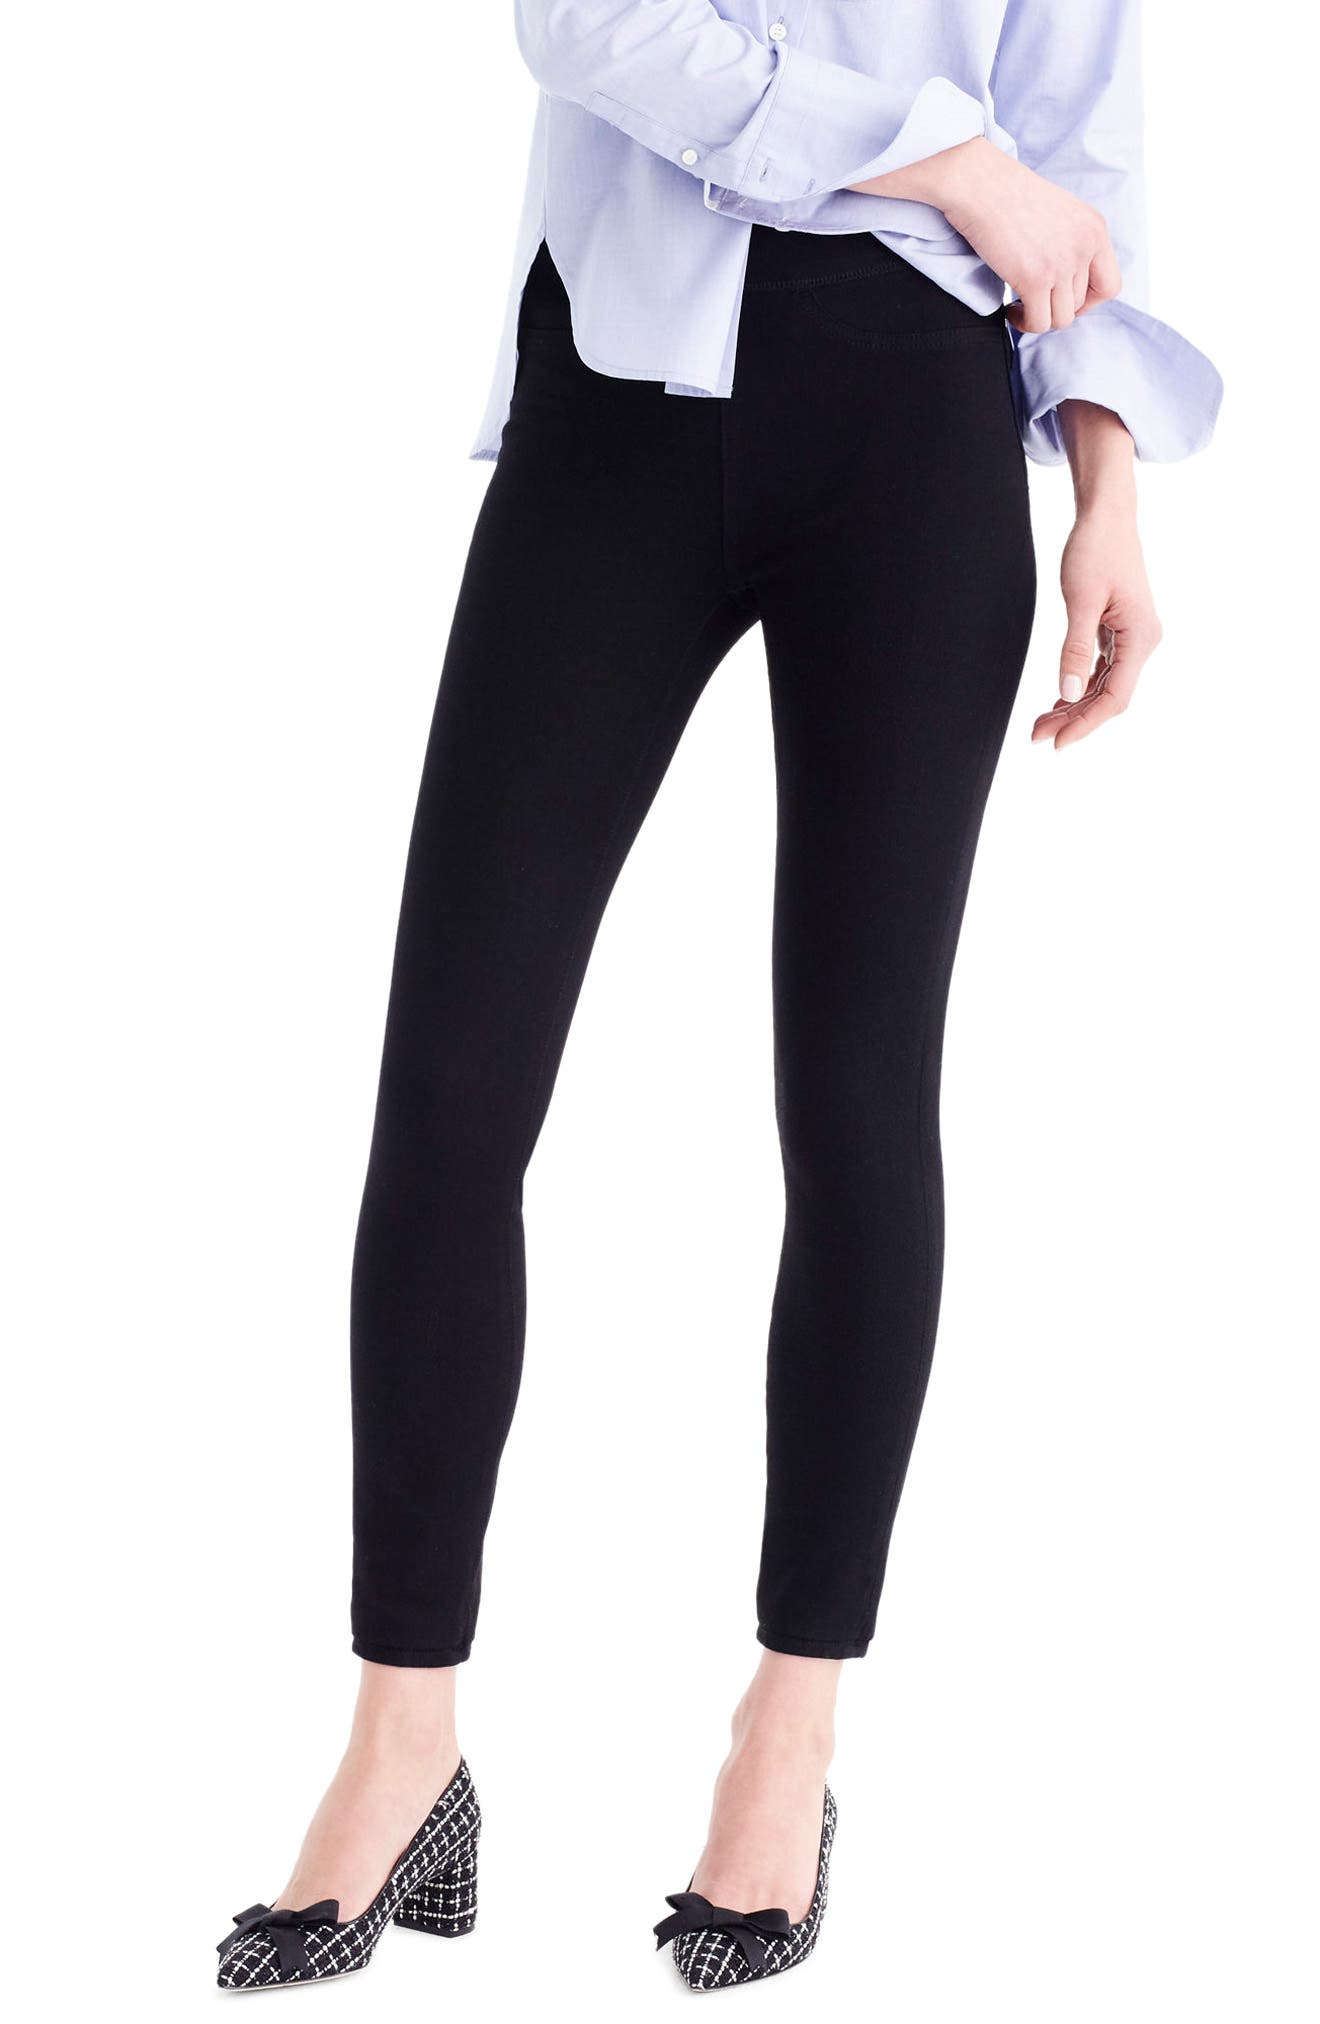 J.Crew Pull-On Toothpick Black Skinny Jeans